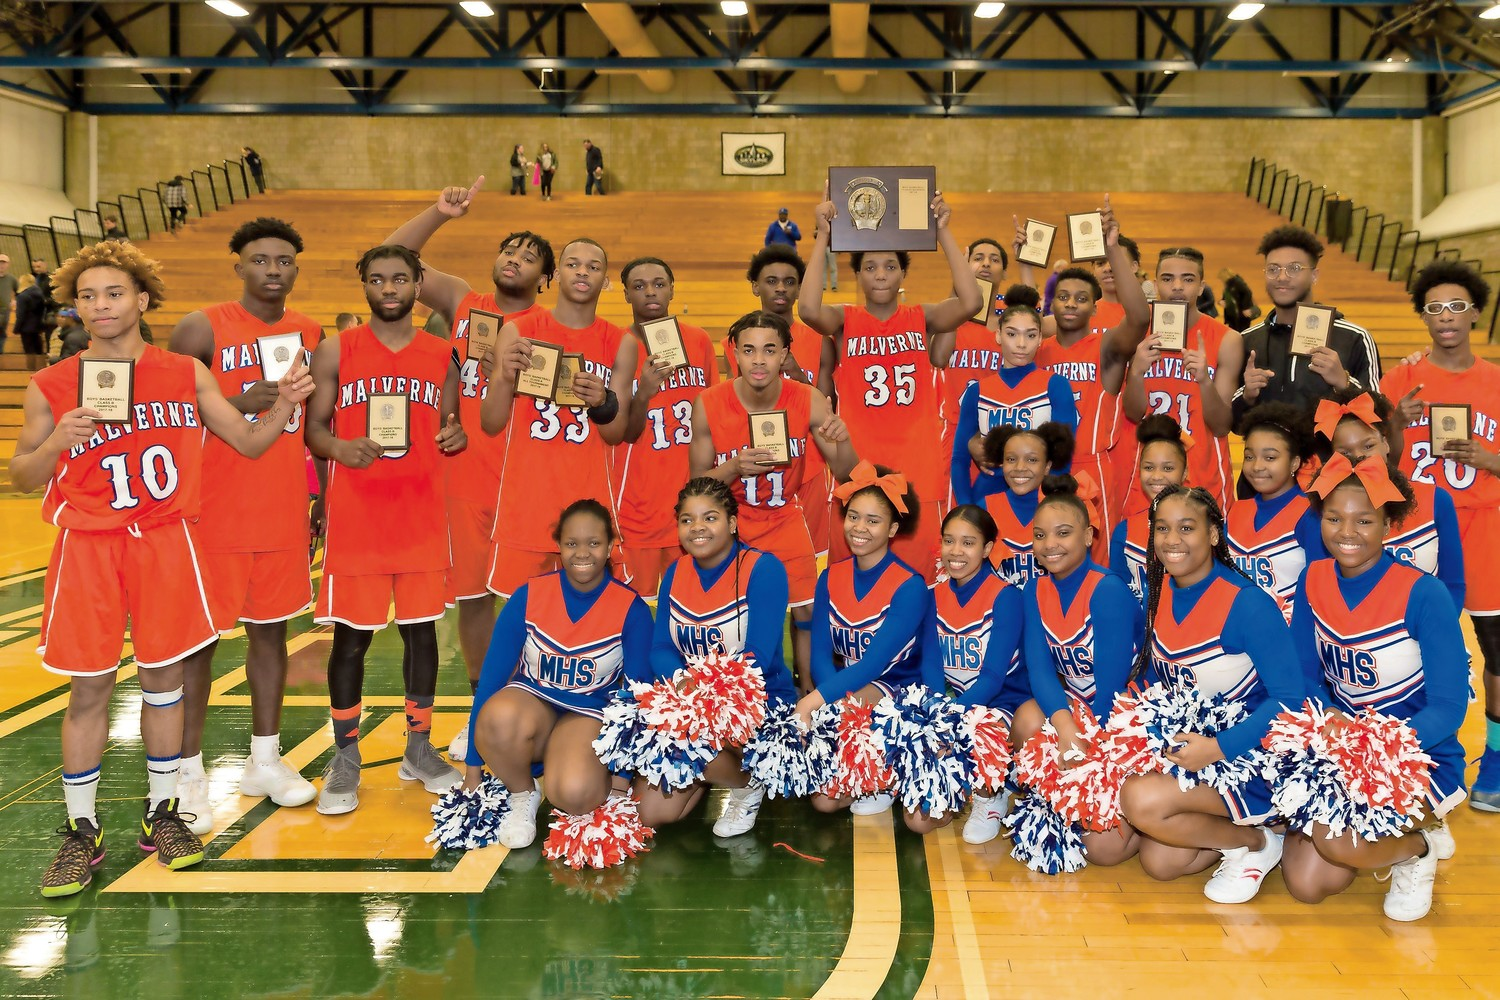 he Mules won their first Class B title since 2011. Malverne will play for the L.I. title against Center Moriches at Suffolk Community College in Brentwood on March 6, at 5 p.m.